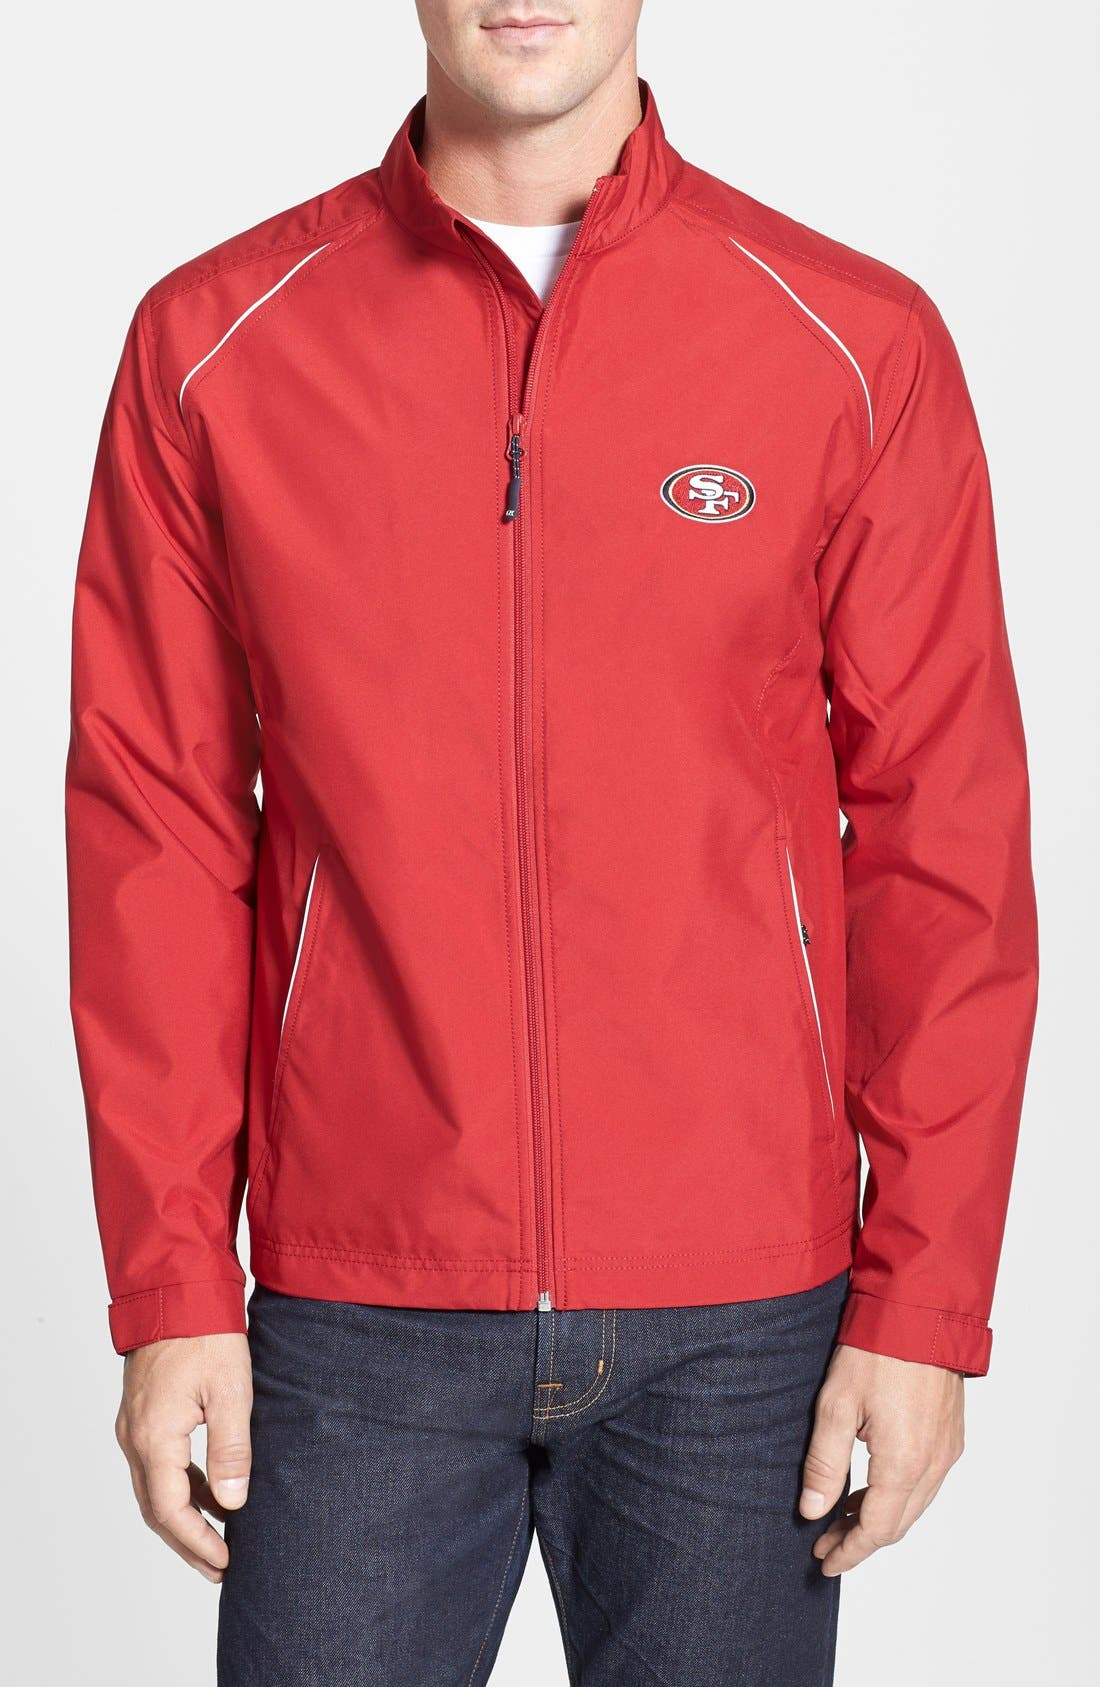 San Francisco 49ers - Beacon WeatherTec Wind & Water Resistant Jacket,                         Main,                         color, Cardinal Red